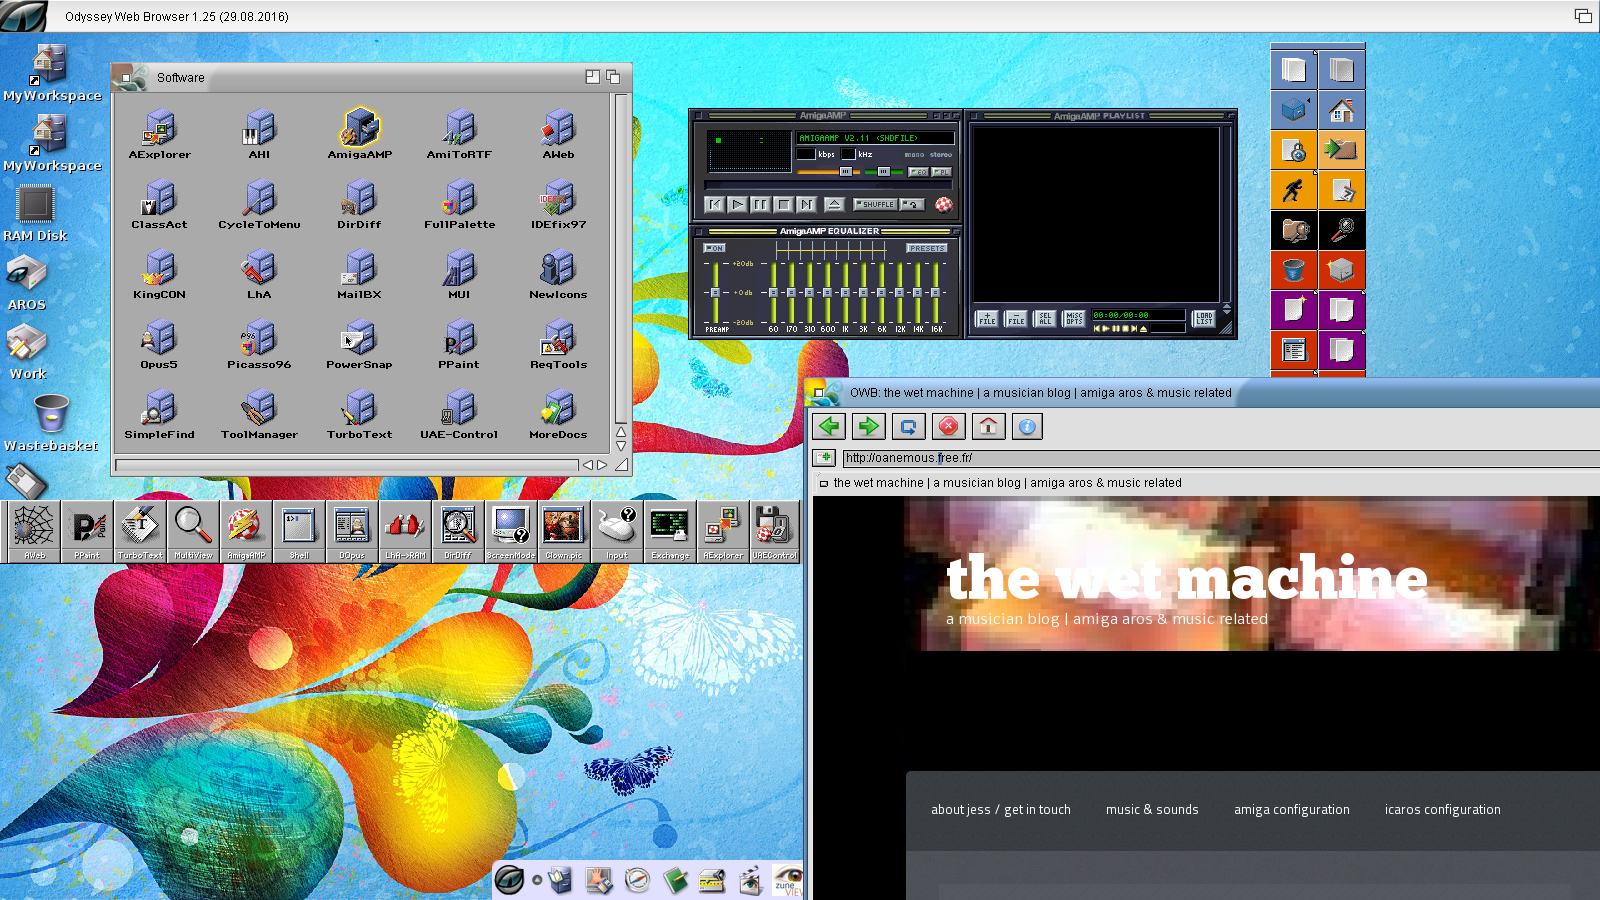 amiga amp running in coherency mode on top of wanderer windows. Tools manager can be used to launch you applications !